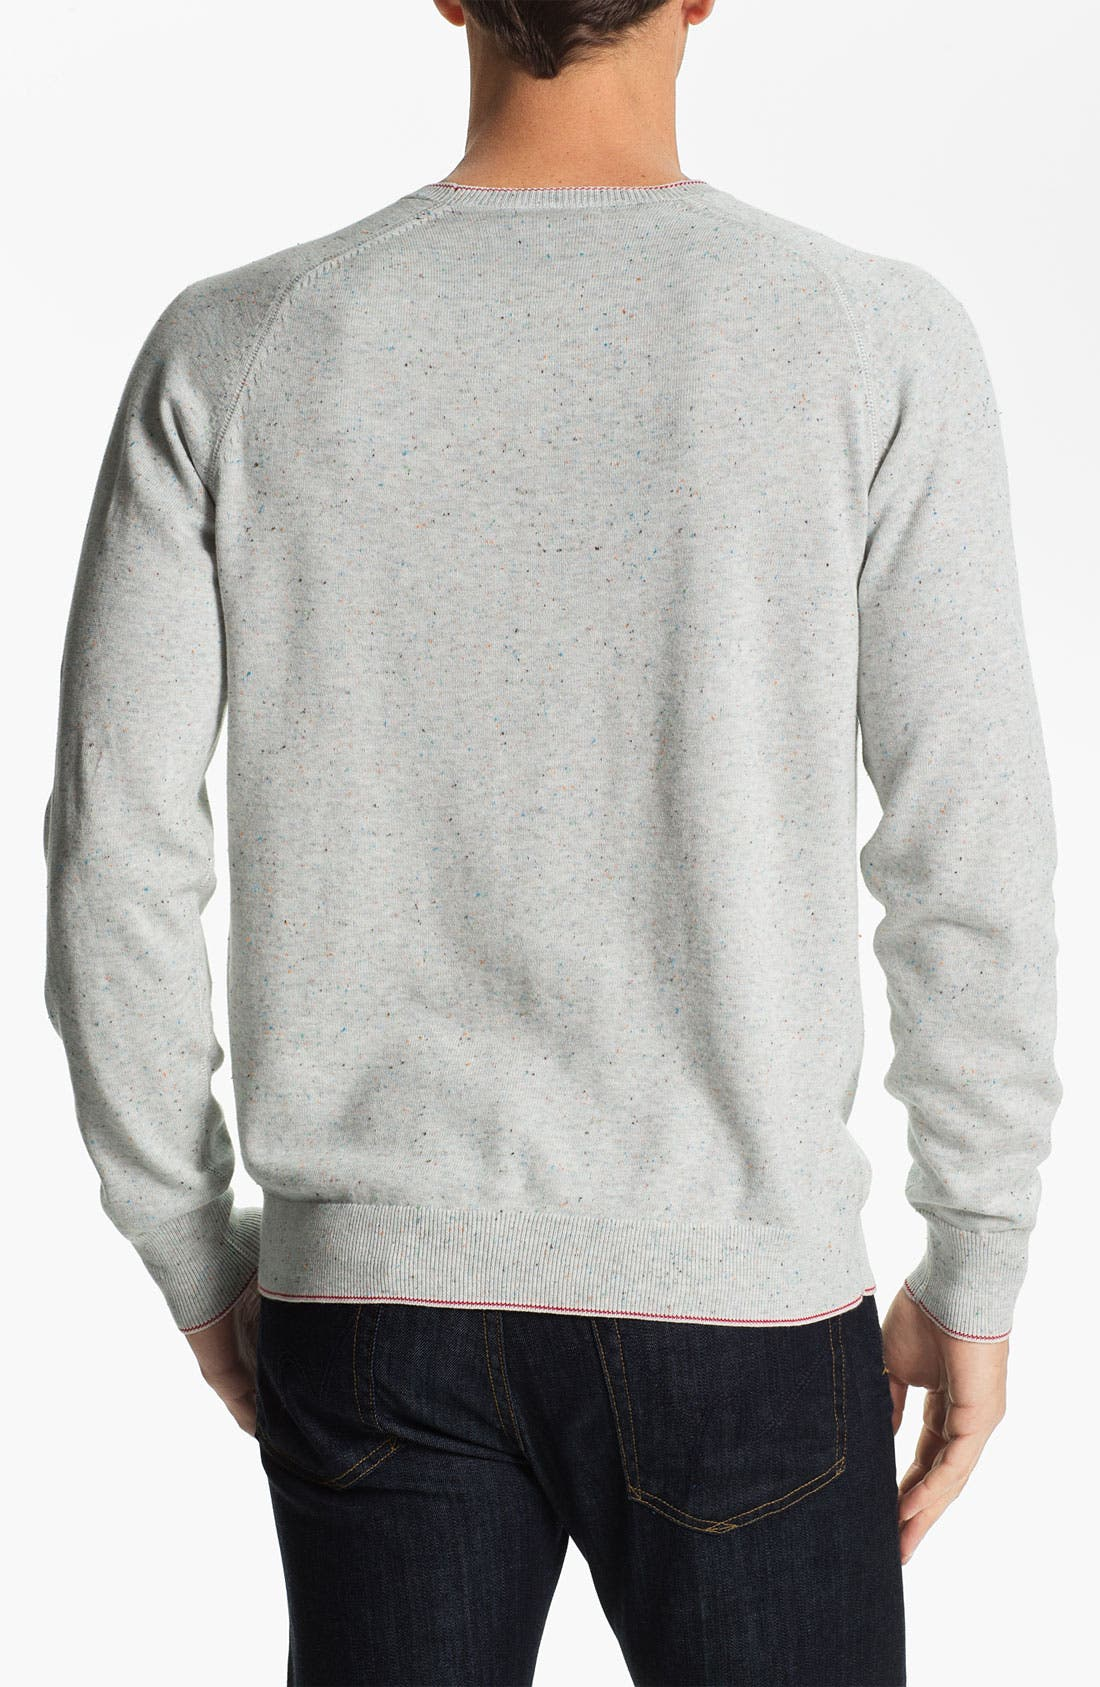 AGAVE,                             'Abeam' Crewneck Sweater,                             Alternate thumbnail 3, color,                             074